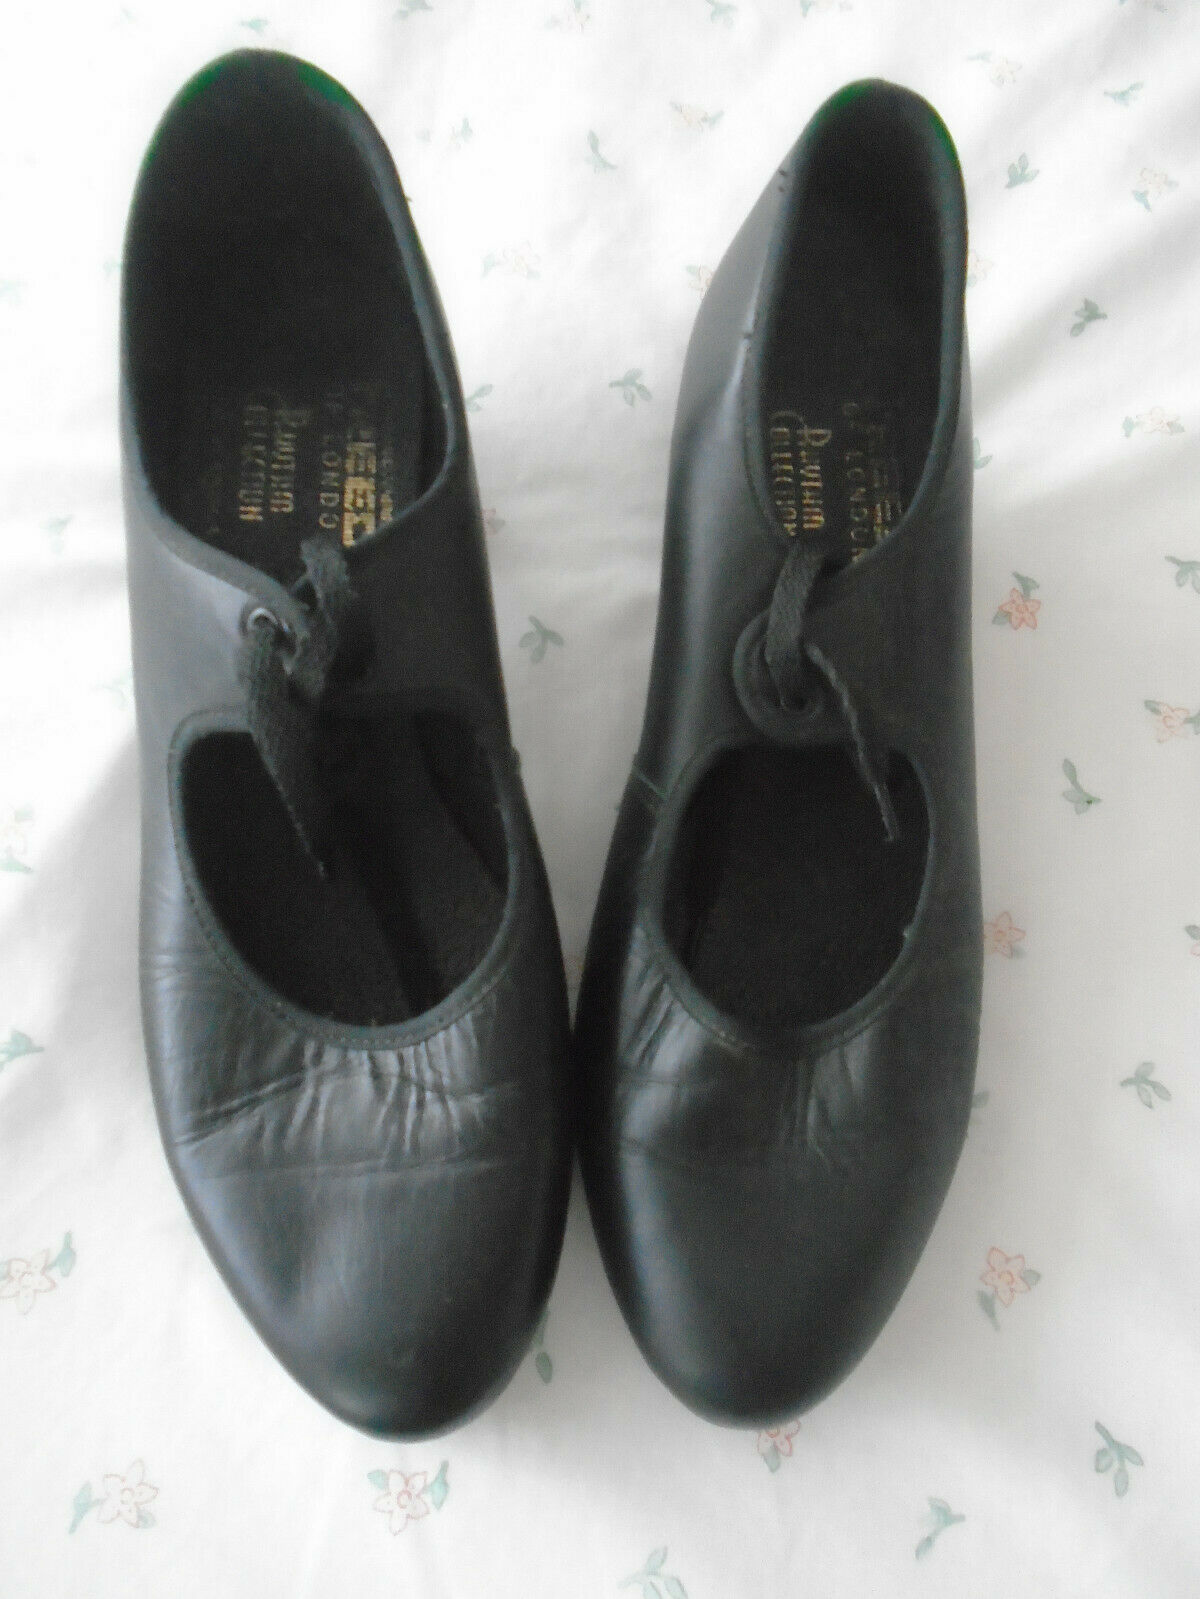 Ladies Leather Tap Shoes: Freed of London: The Rythmic Collection: Size 6.5: